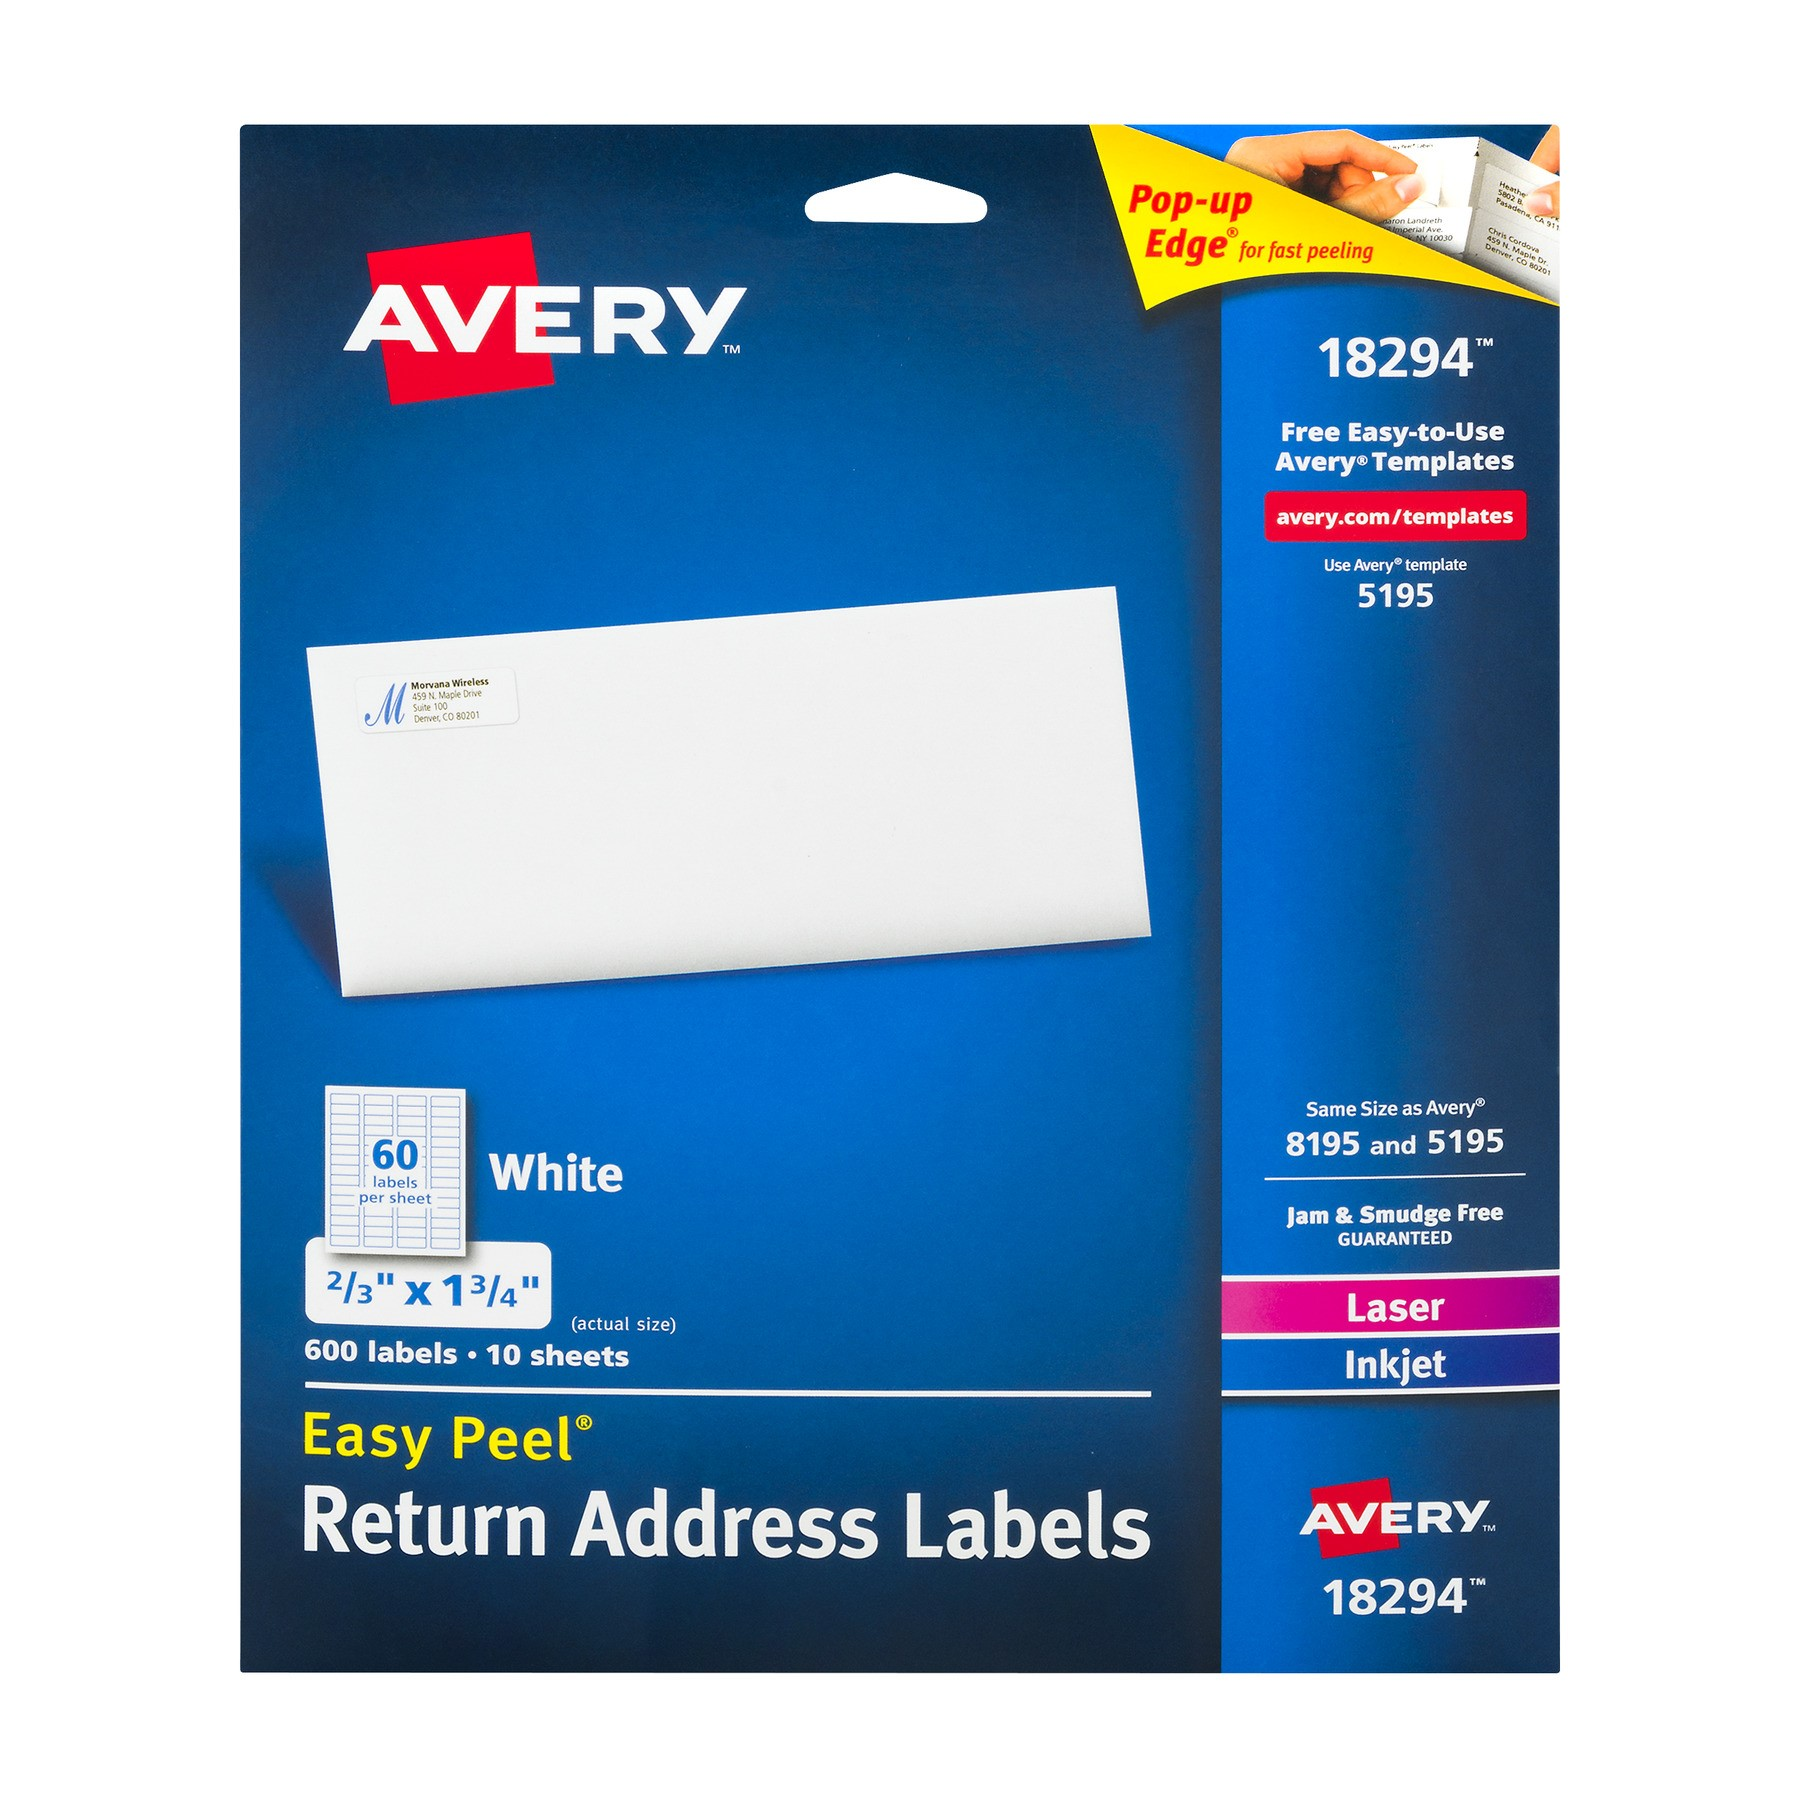 Avery 18294 Easy Peel Return Address Labels - 600 PK, 600.0 PACK